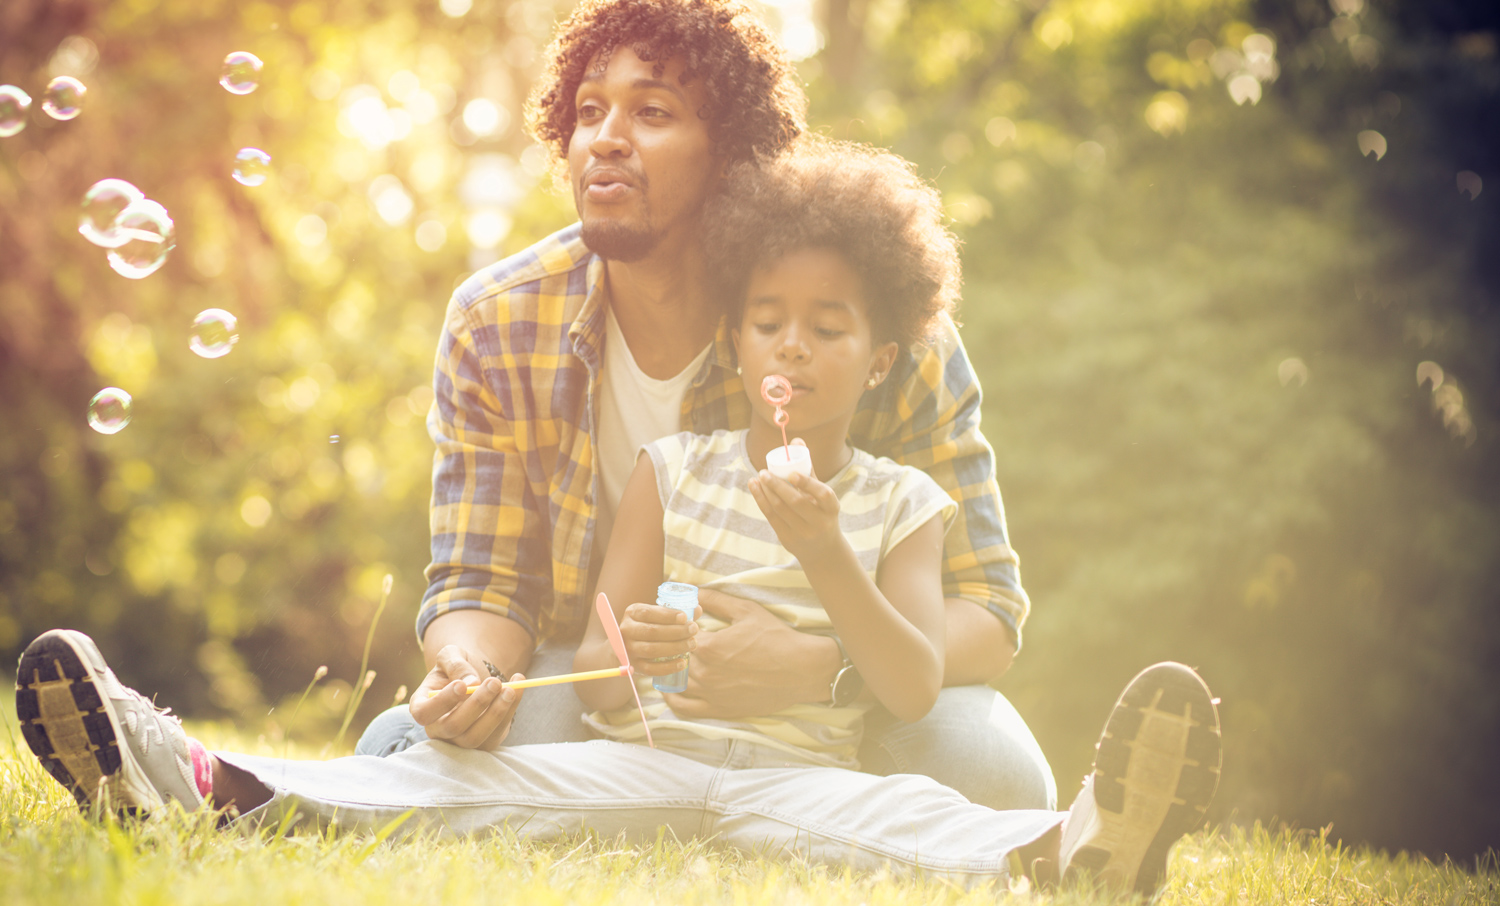 N-Father-and-daughter-spending-time-together-sitting-on-the-grass.jpg